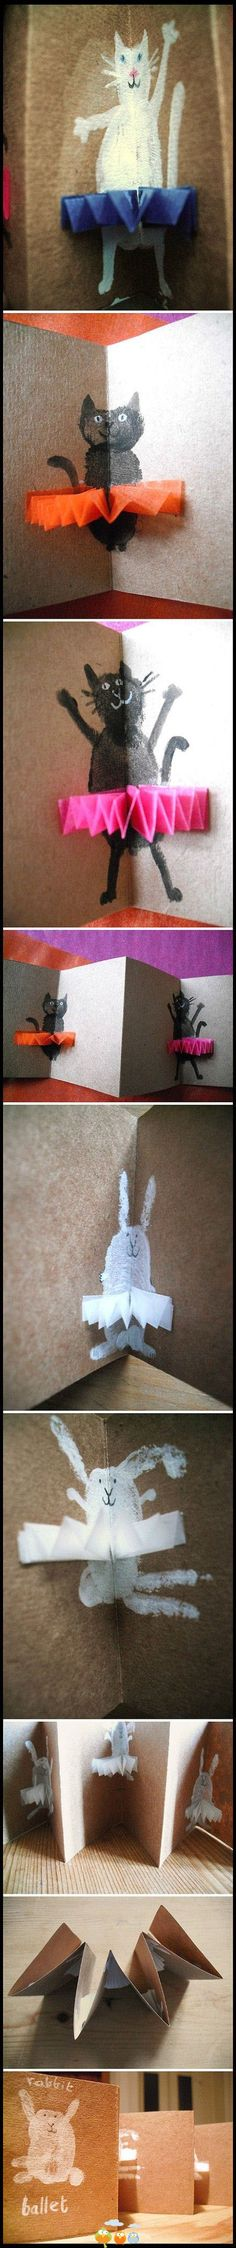 Diy Geschenk Basteln – Such a cute idea for pop up cards! Origami, Diy For Kids, Crafts For Kids, Fun Crafts, Arts And Crafts, Paper Pop, Pop Up Cards, Diy Cards, Envelopes